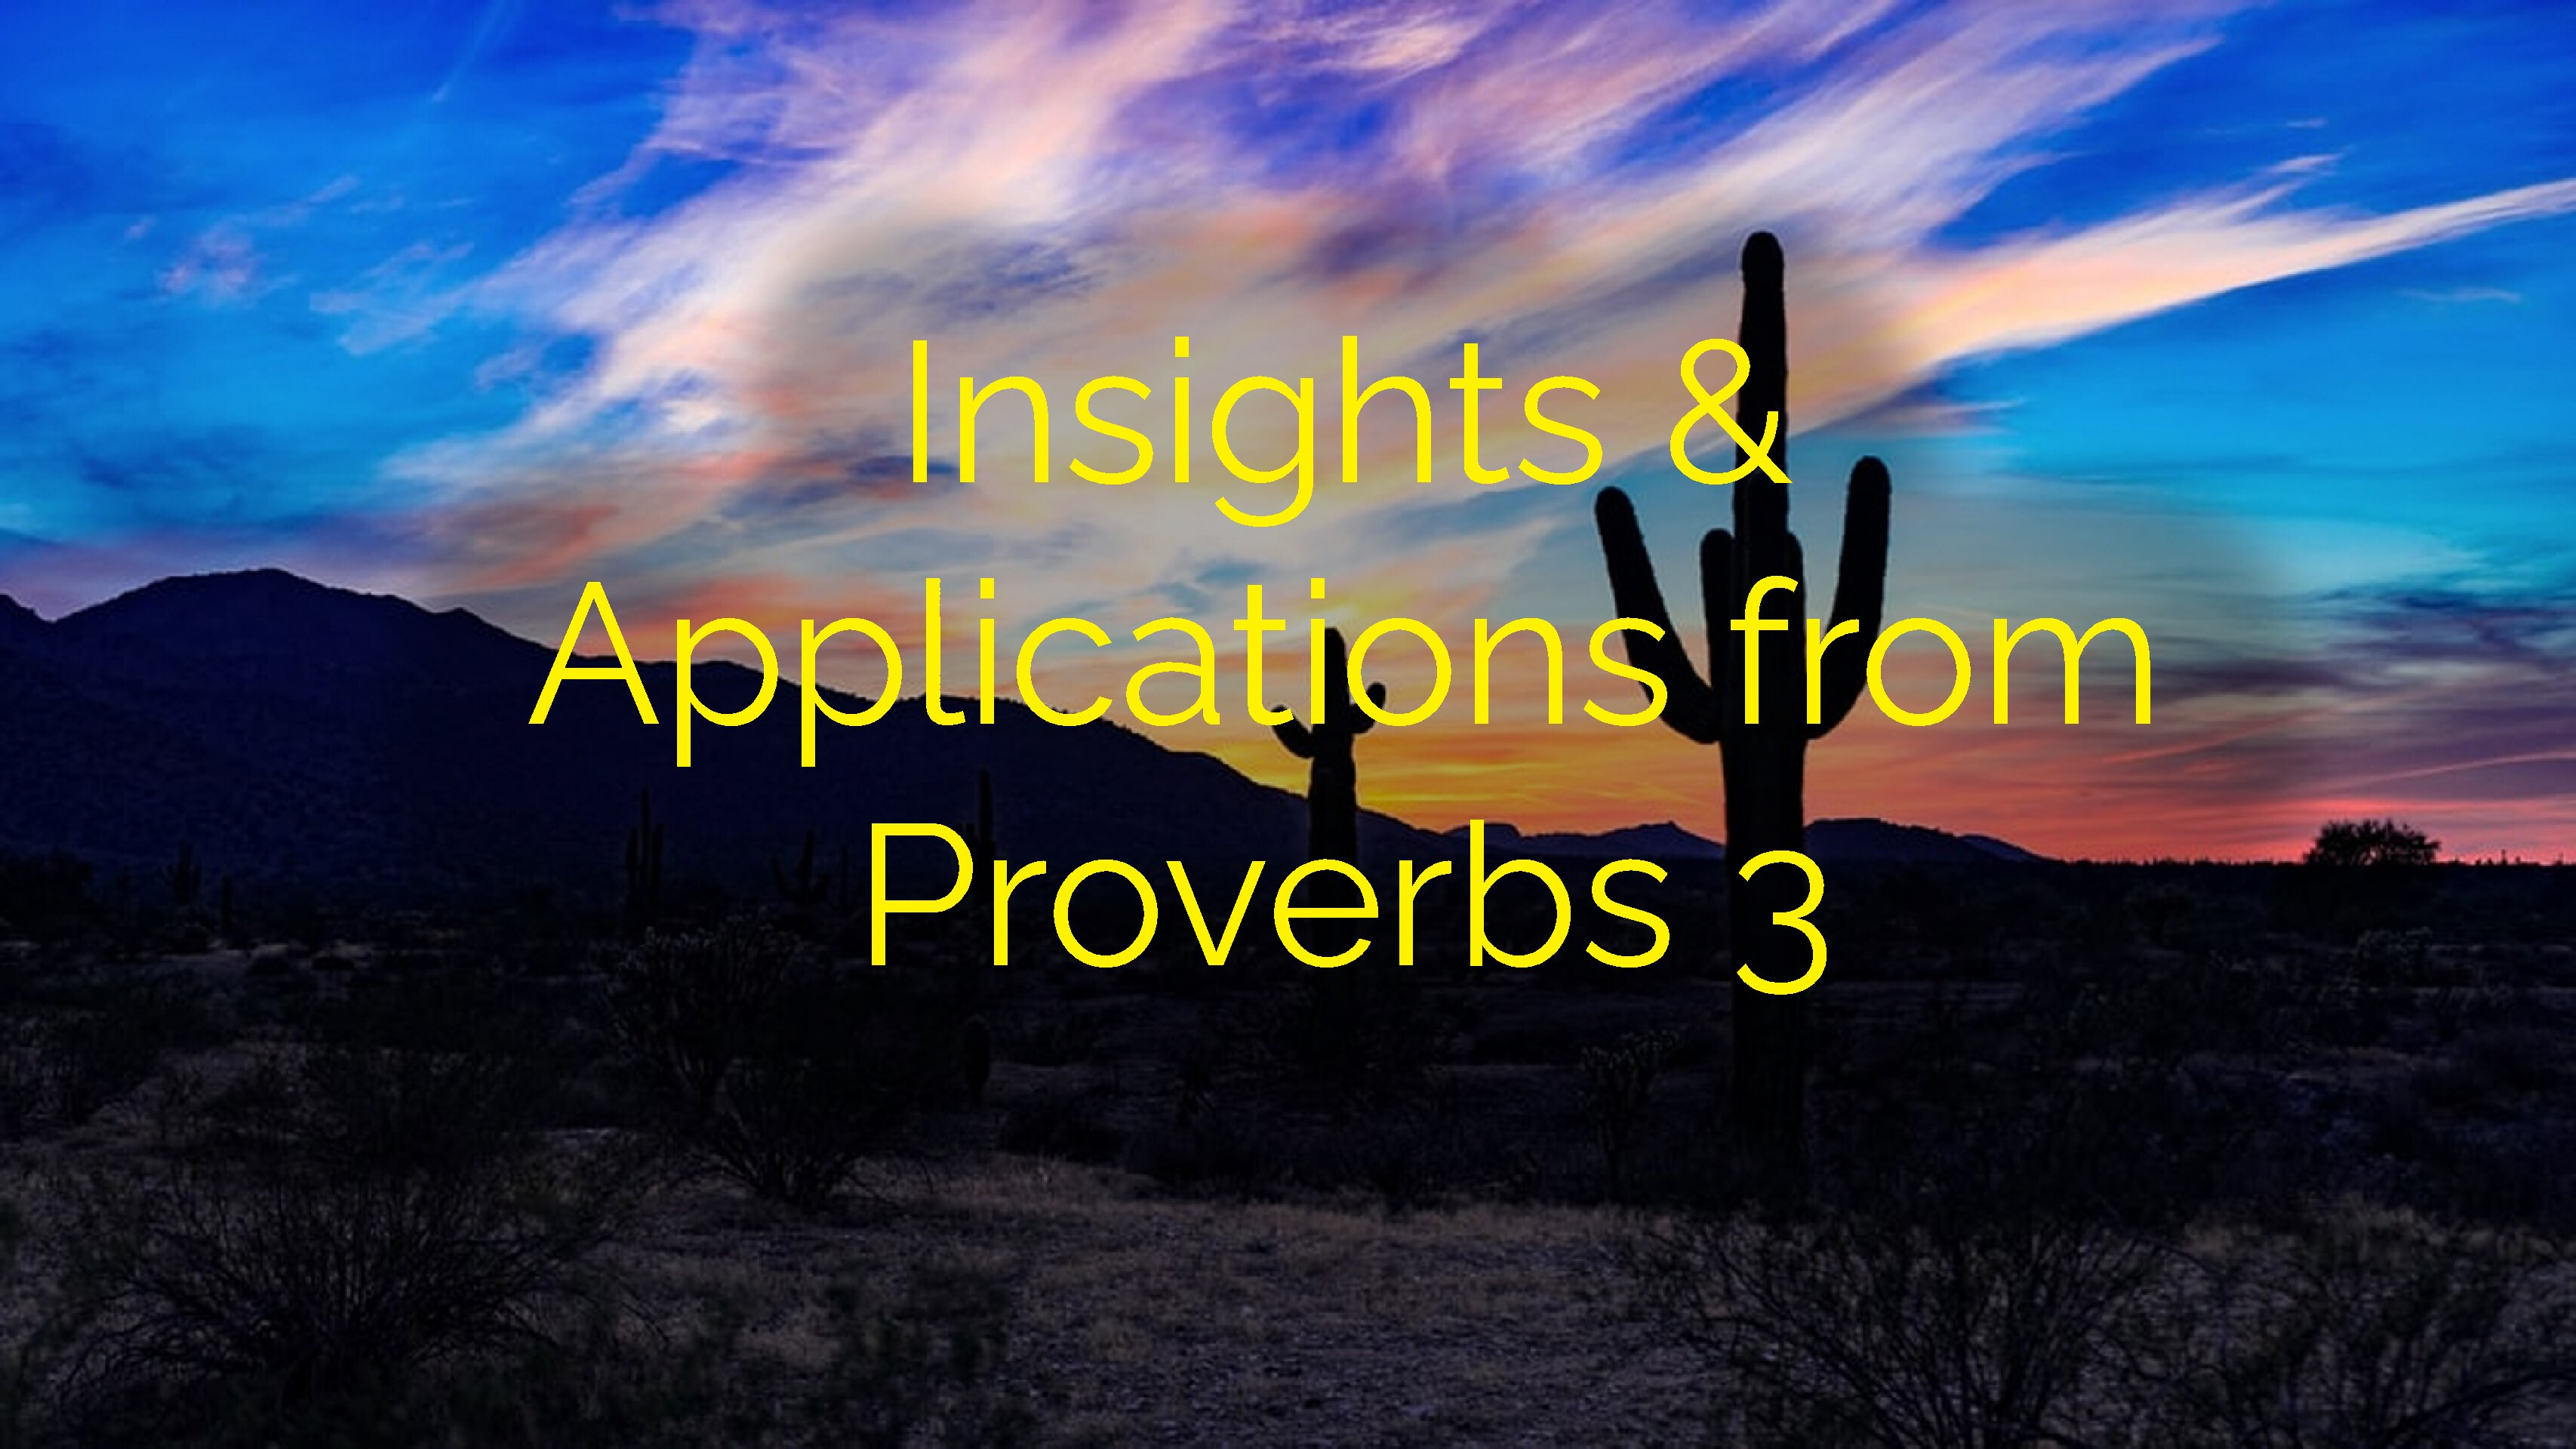 Insights and Application from Proverbs 3:5-6